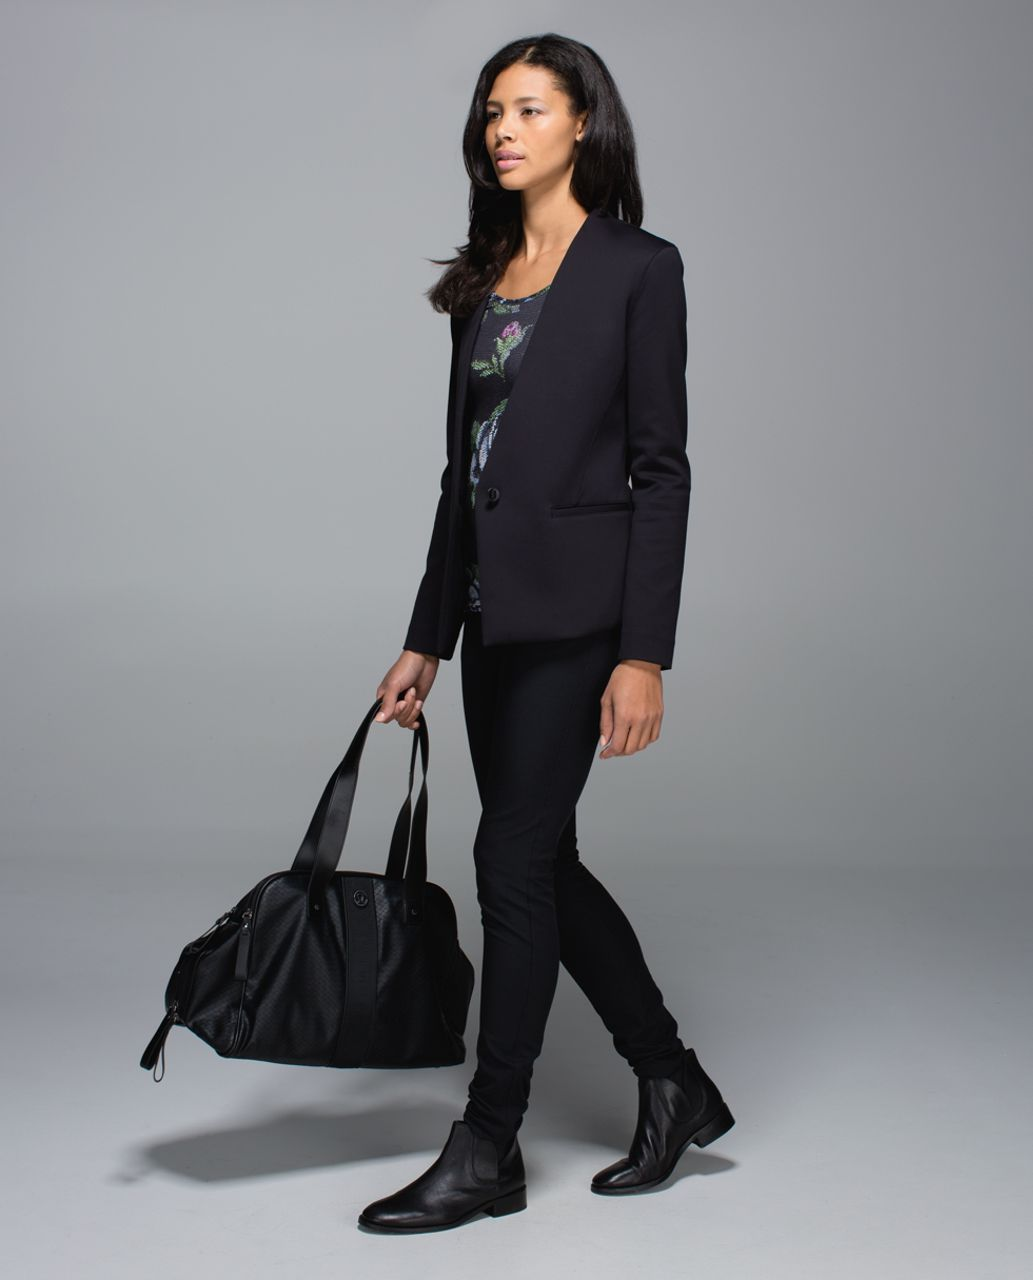 Lululemon Power Date Blazer - Black